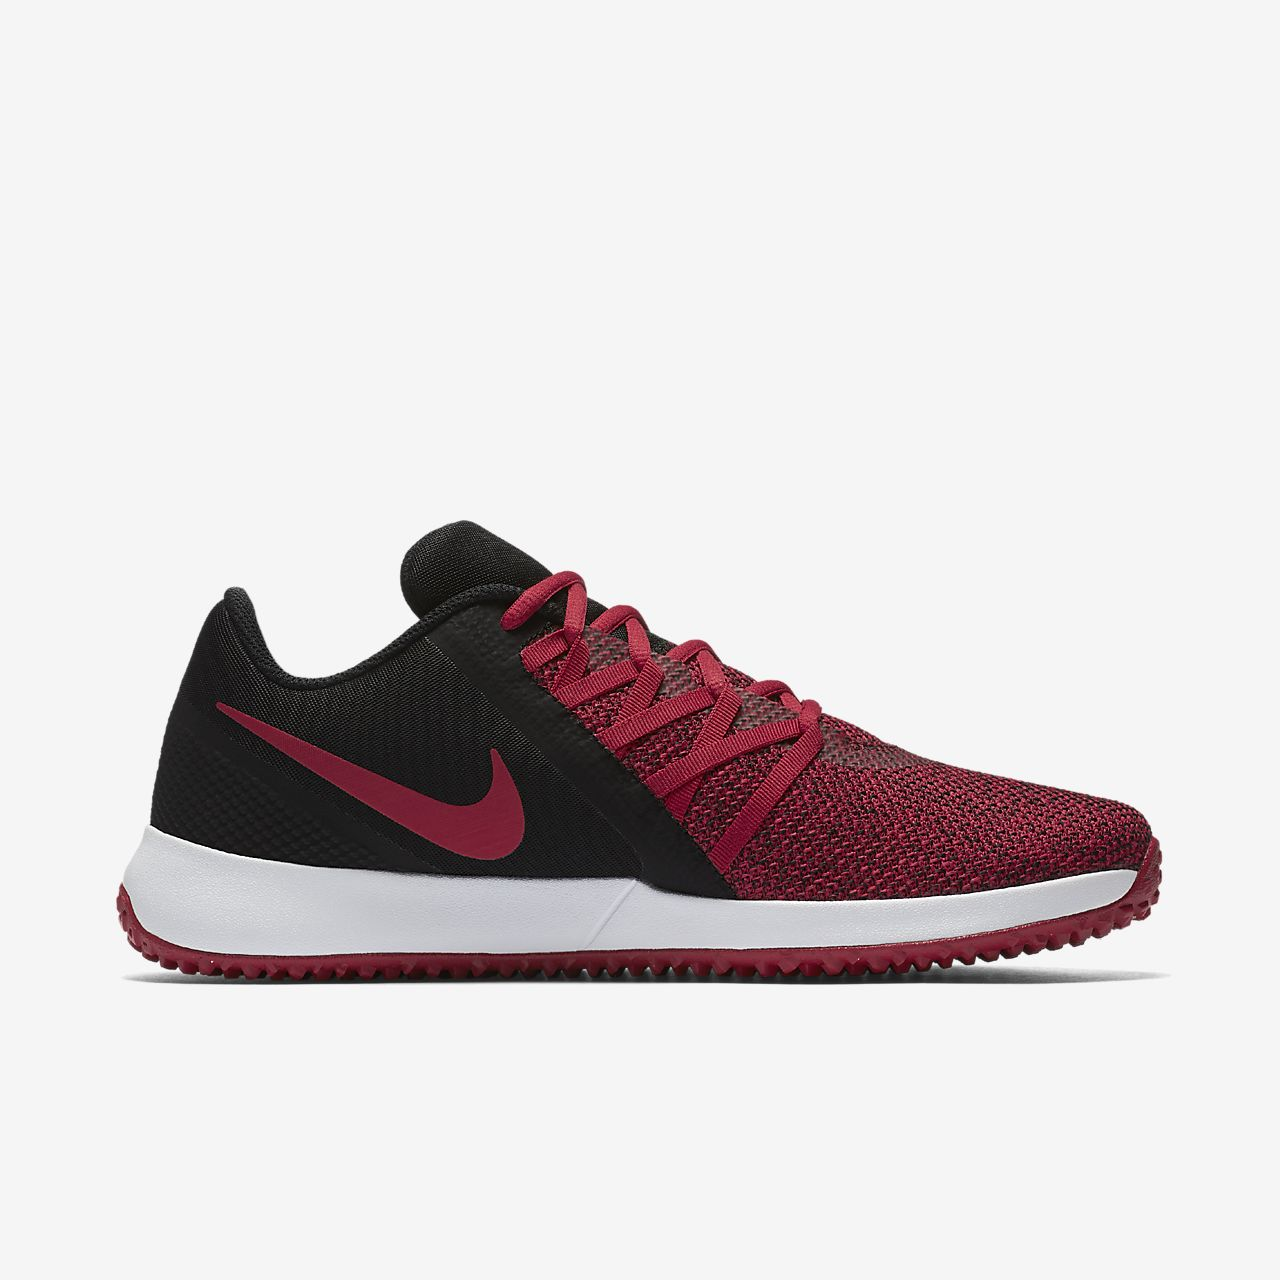 nike internationalist id men's shoe nz